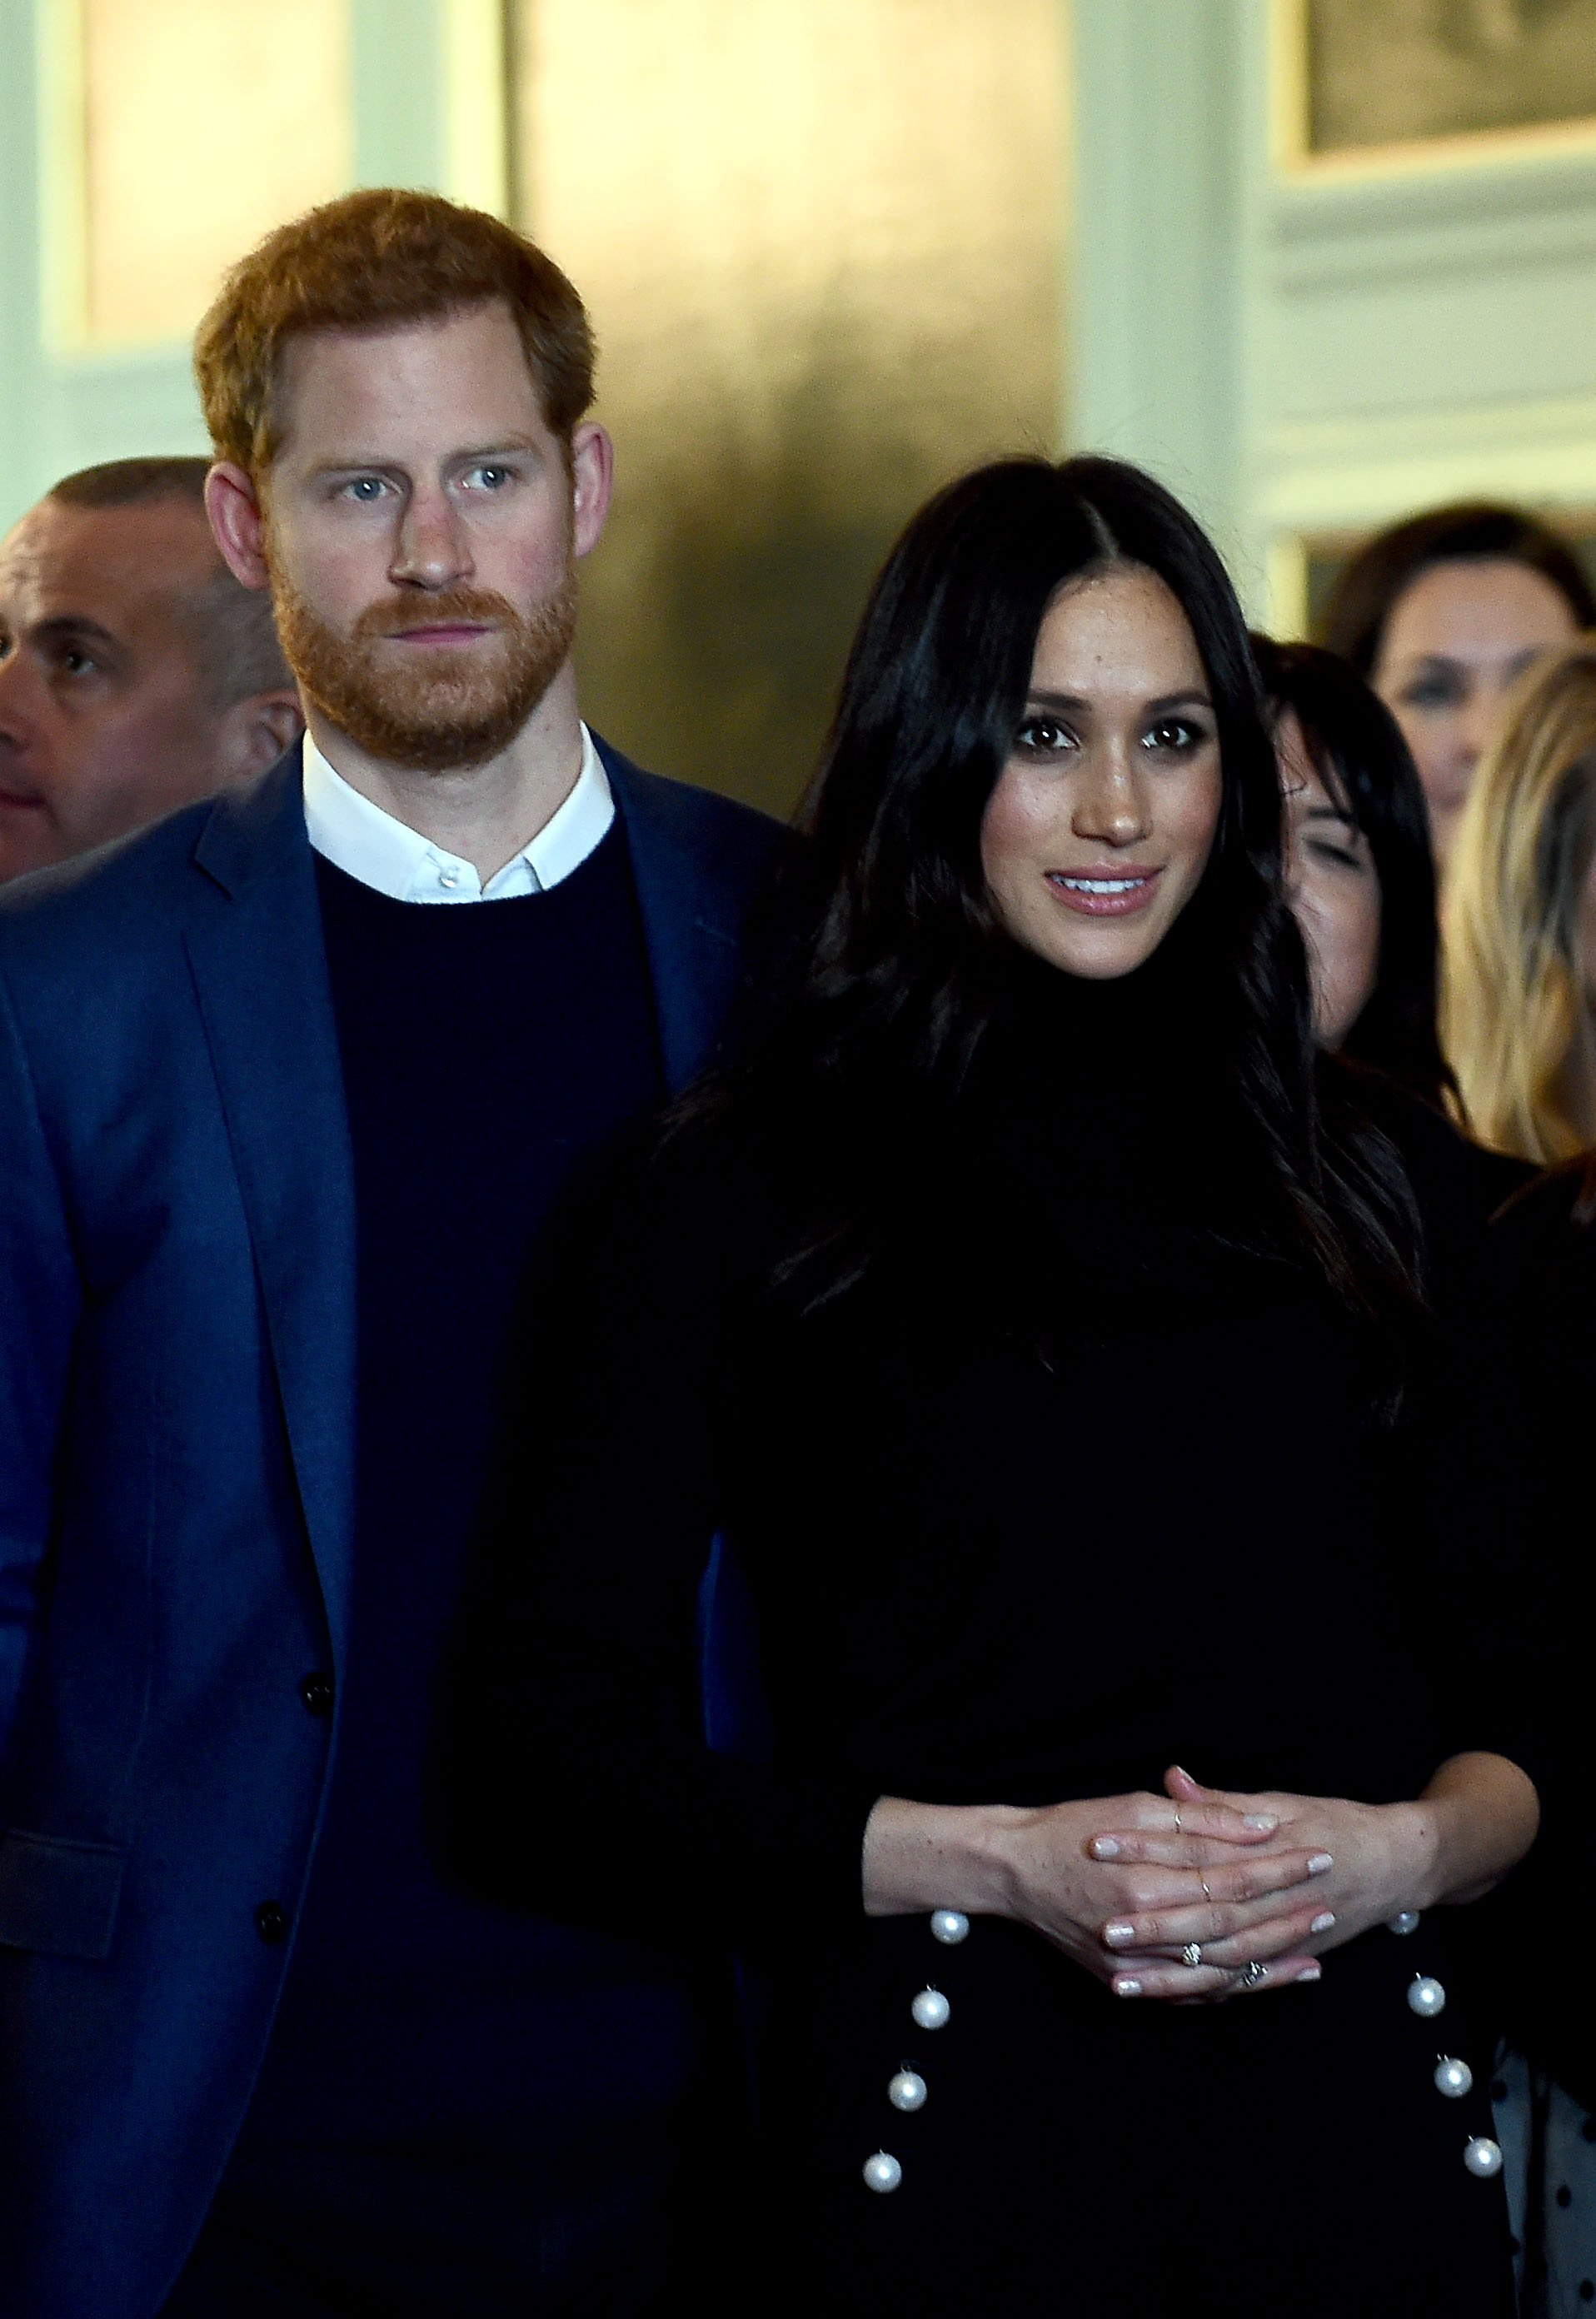 Prince Harry and Meghan Markle during a reception